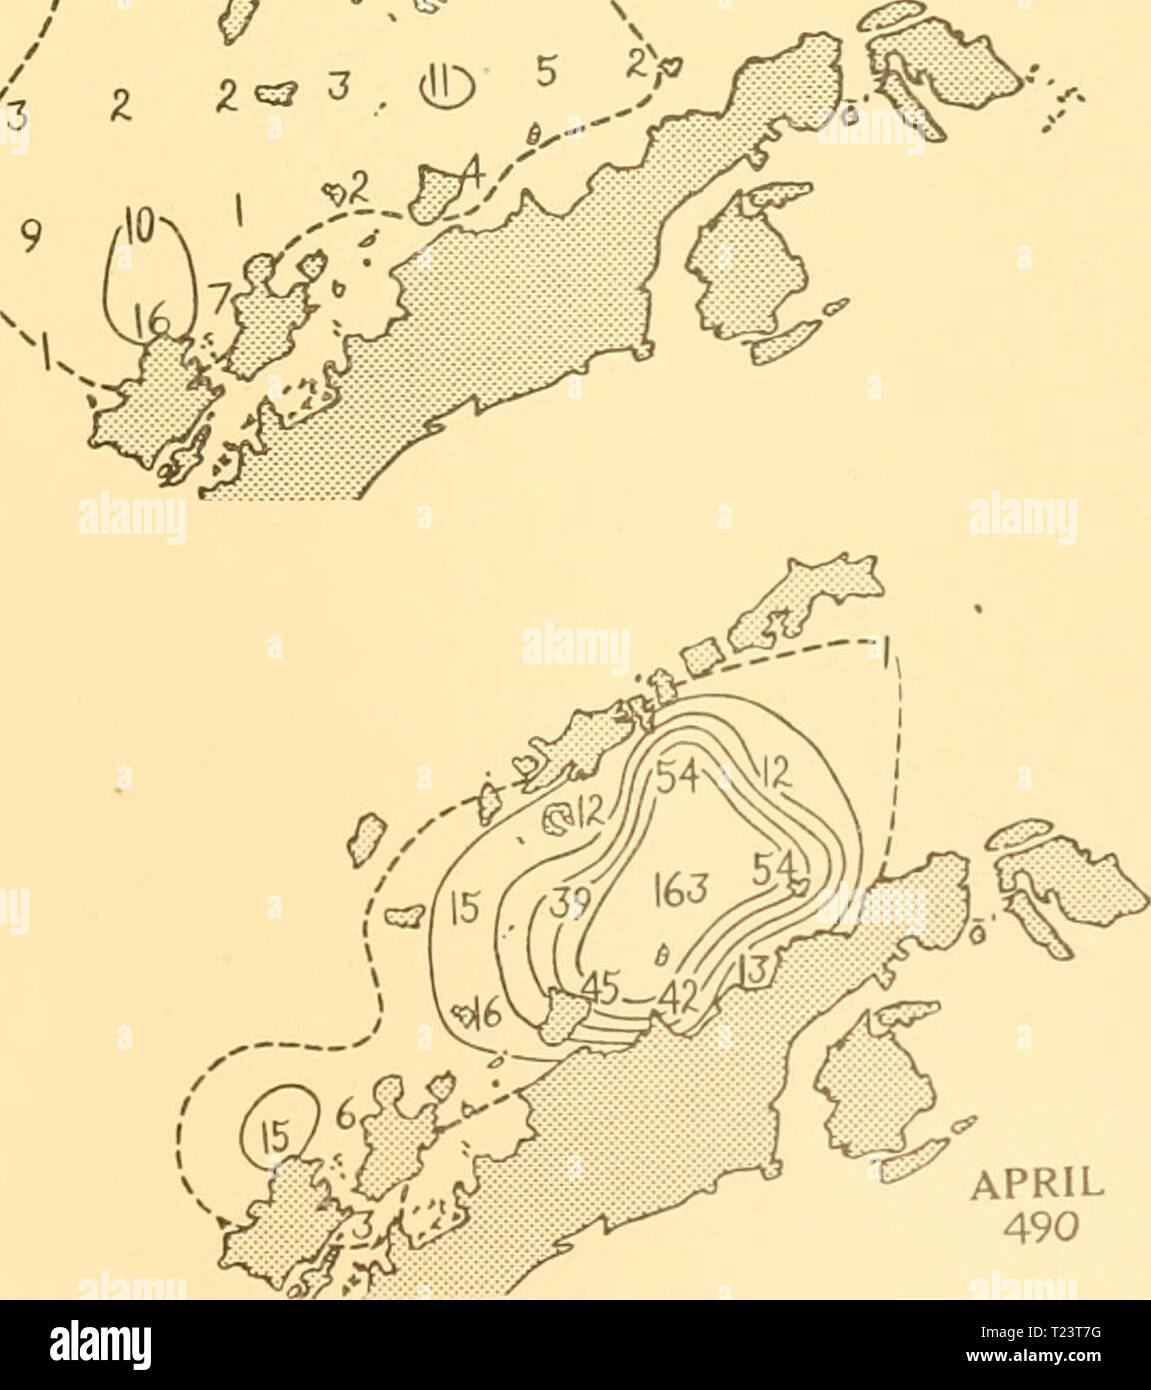 Archive image from page 260 of Discovery reports (1932) Discovery reports  discoveryreports06inst Year: 1932  FEBRUARY 85 SCALE OF NAUTICAL MILES.    APRIL 490 lOO 200 30O Distribution of Blue whales on the South Shetland grounds in season 1925-6 - Stock Image